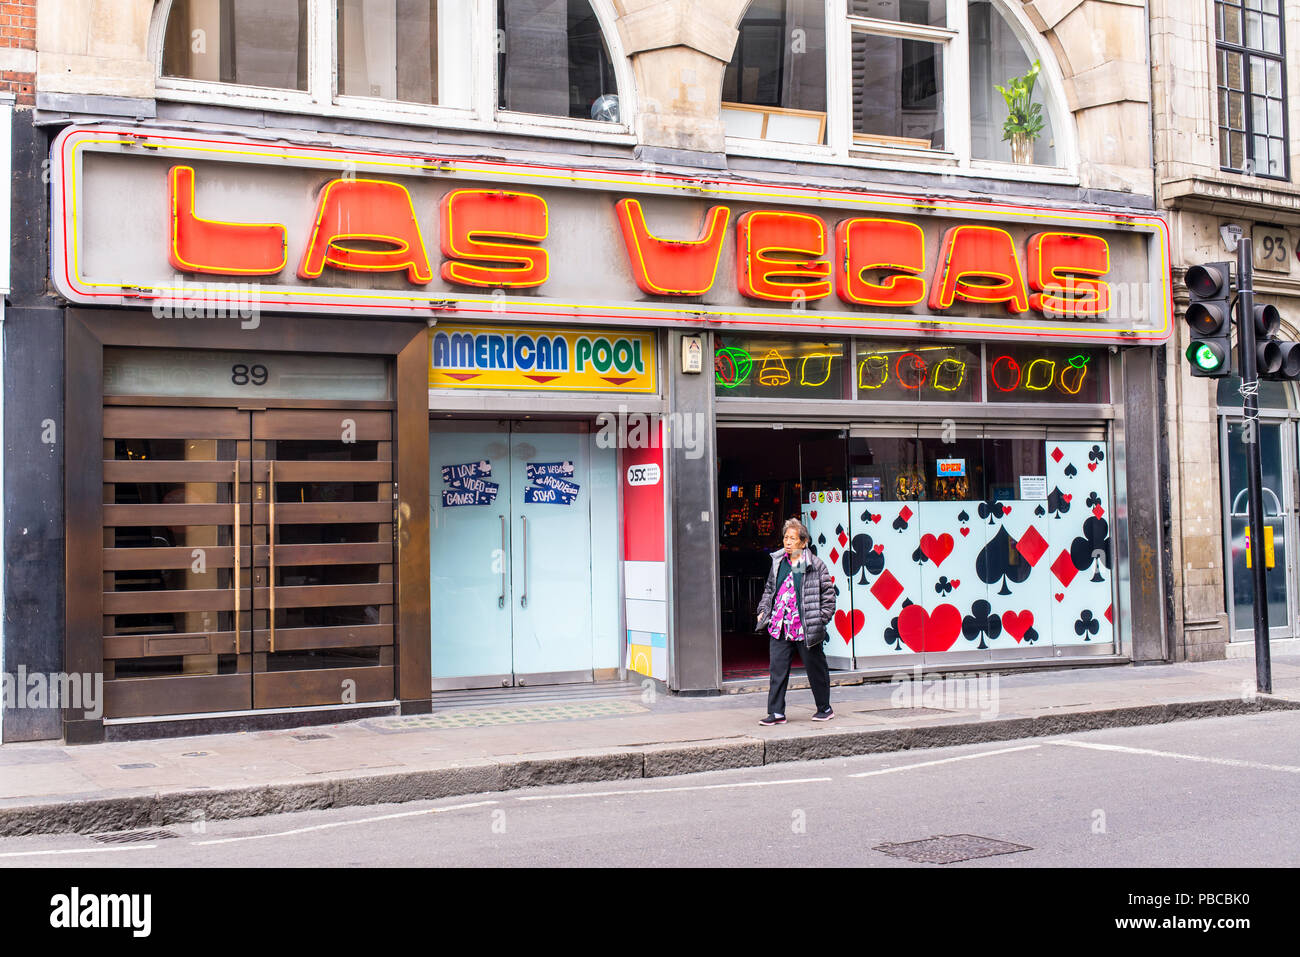 Las Vegas Arcade a videogame amusement arcade located next to Chinatown in the heart of Soho, Wardour Street, Soho, London, UK Stock Photo